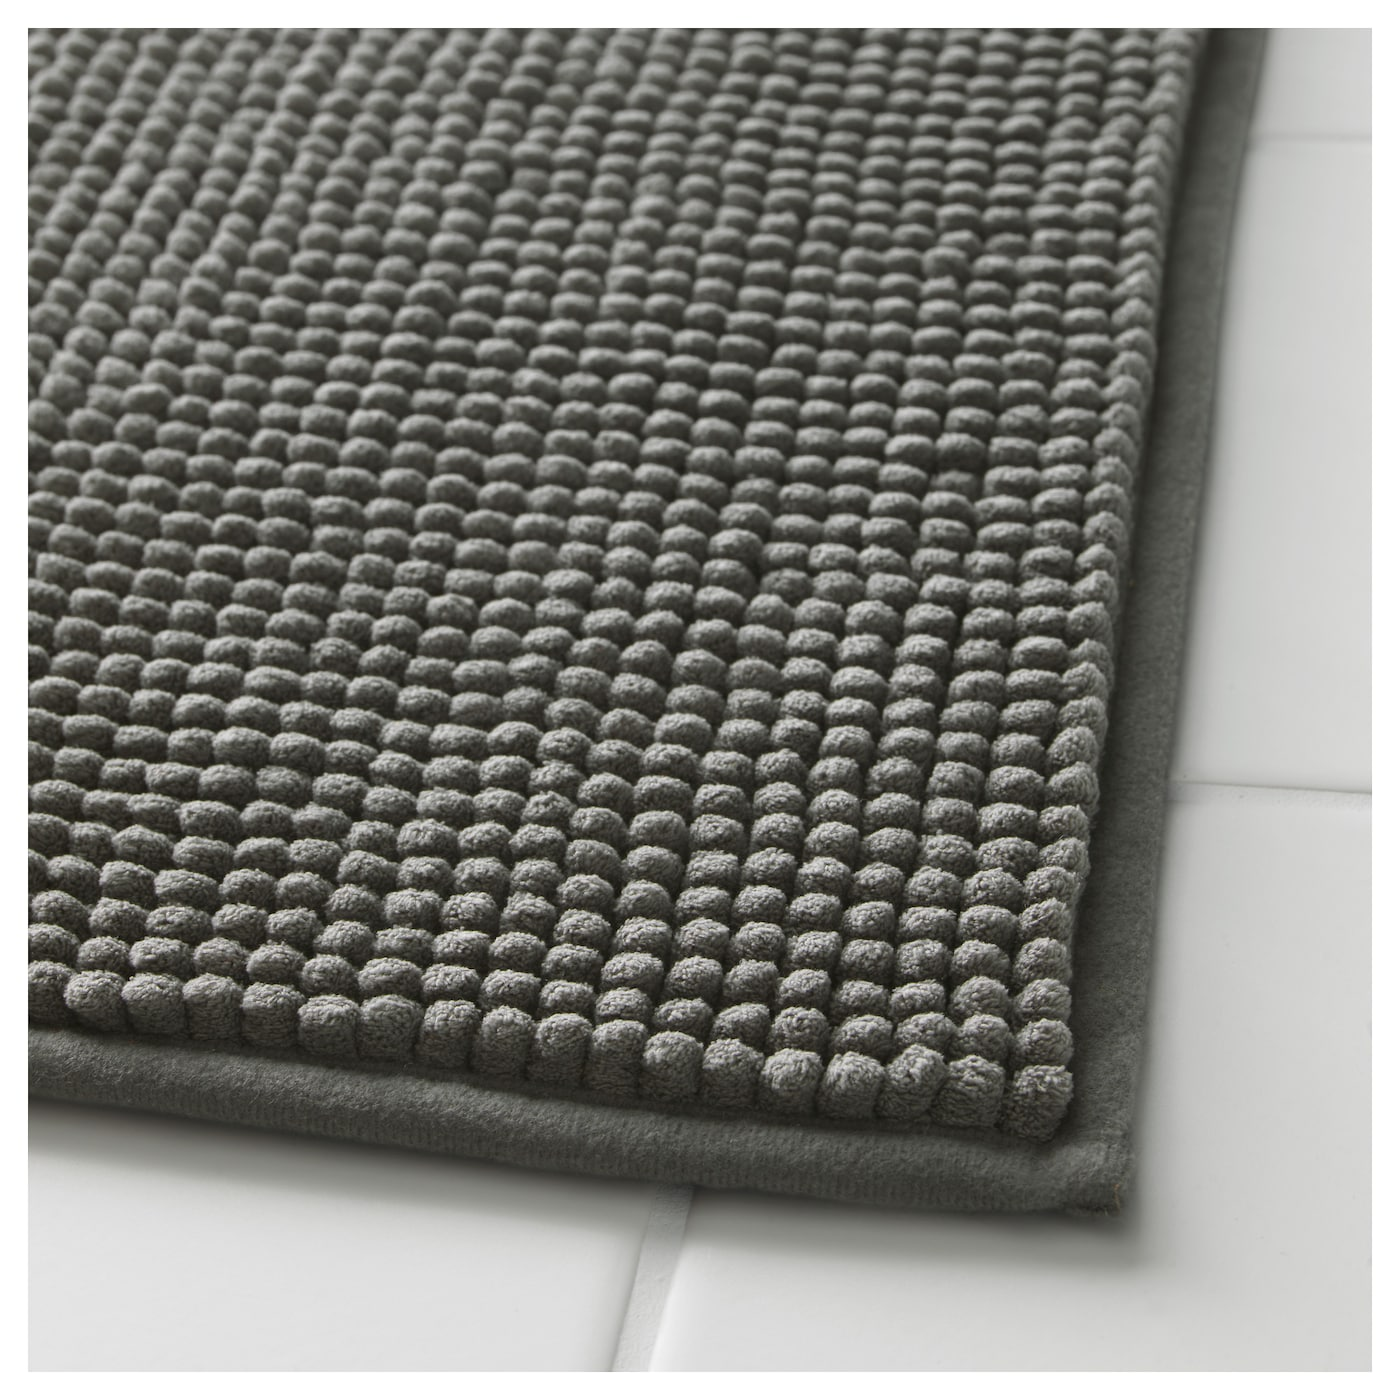 Ikea bathroom mats - Ikea Toftbo Bath Mat Ultra Soft Absorbent And Quick To Dry Since It S Made Of